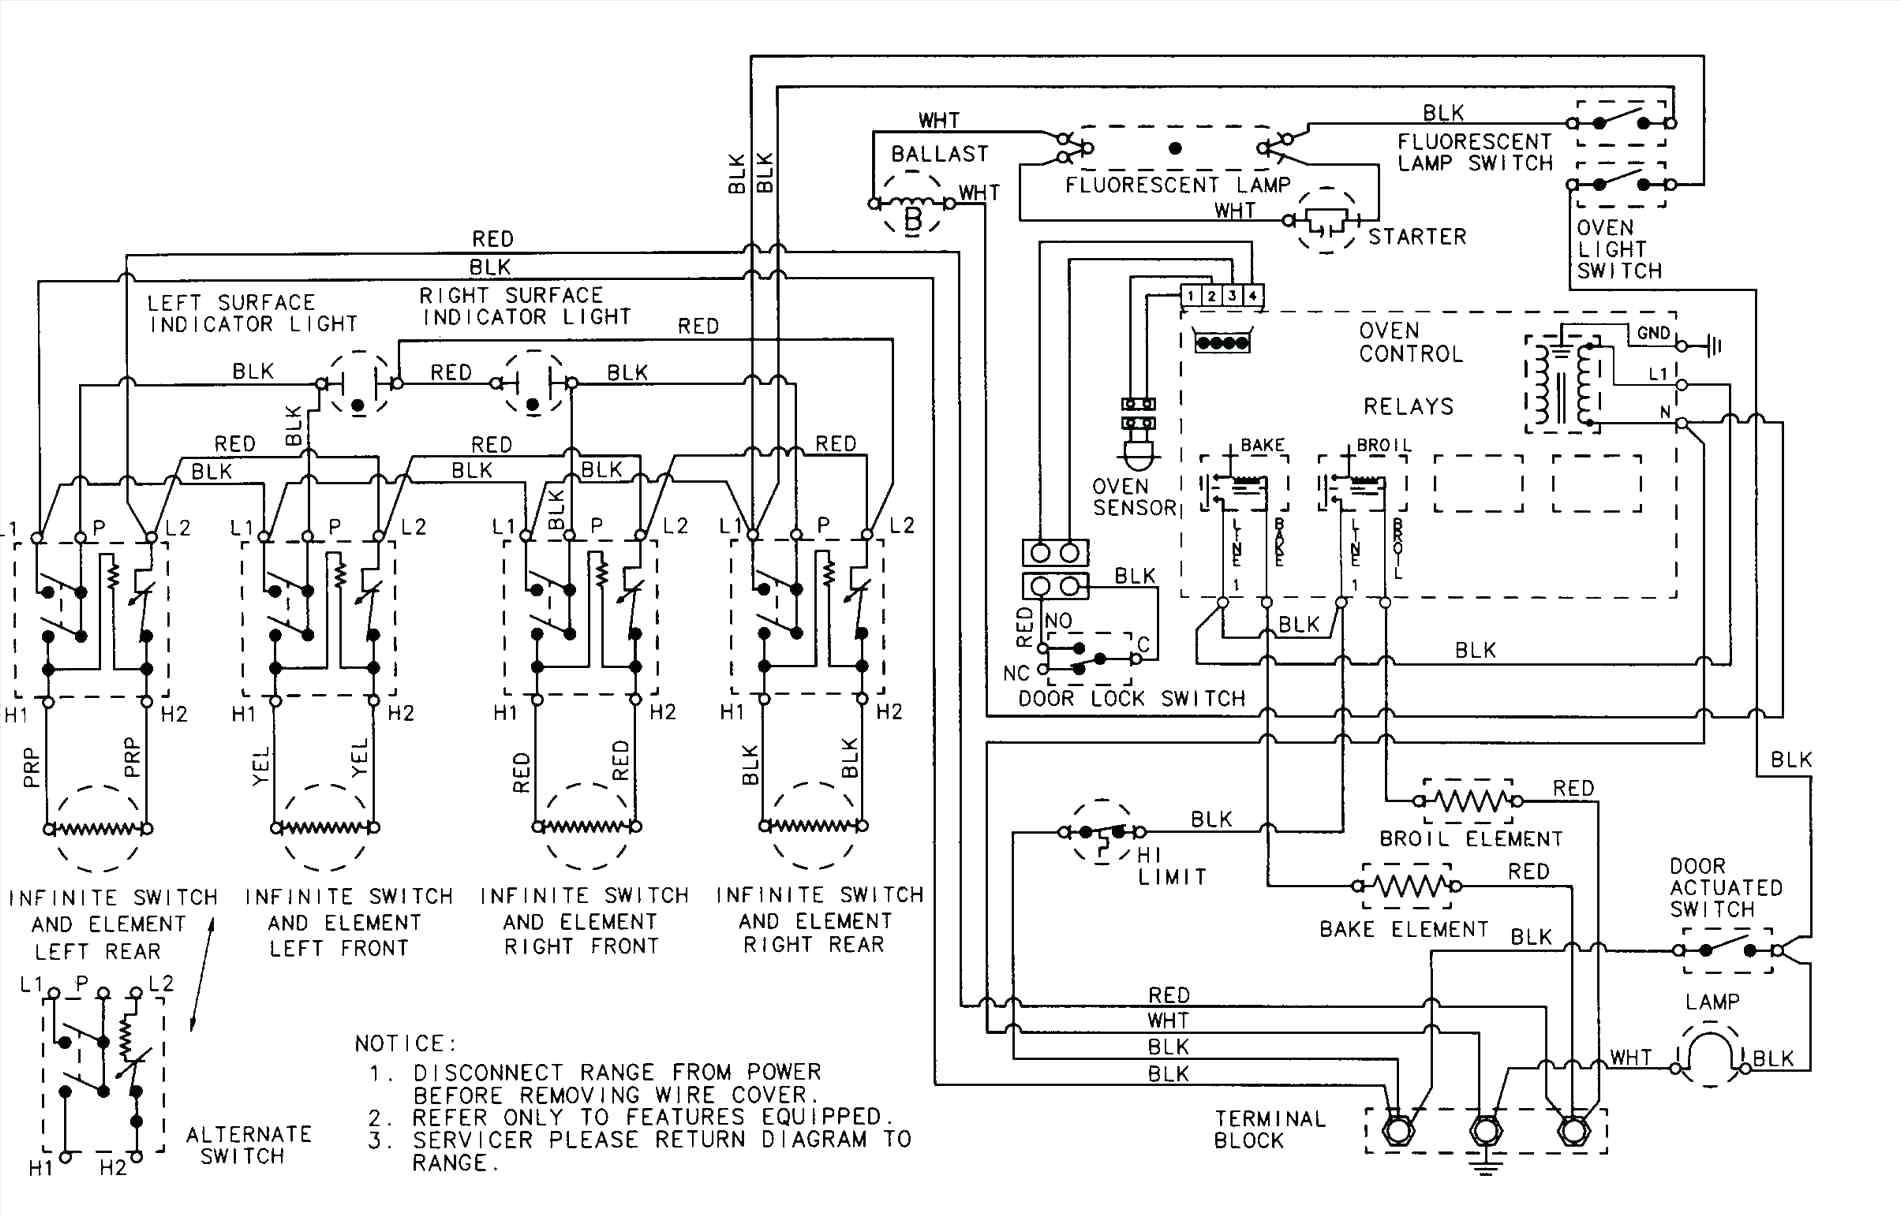 ge dryer wiring diagram Collection-Ge Dryer Start Switch Wiring Diagram Fresh Ge Dryer Timer Wiring Diagram Example Electrical Wiring Diagram 15-i